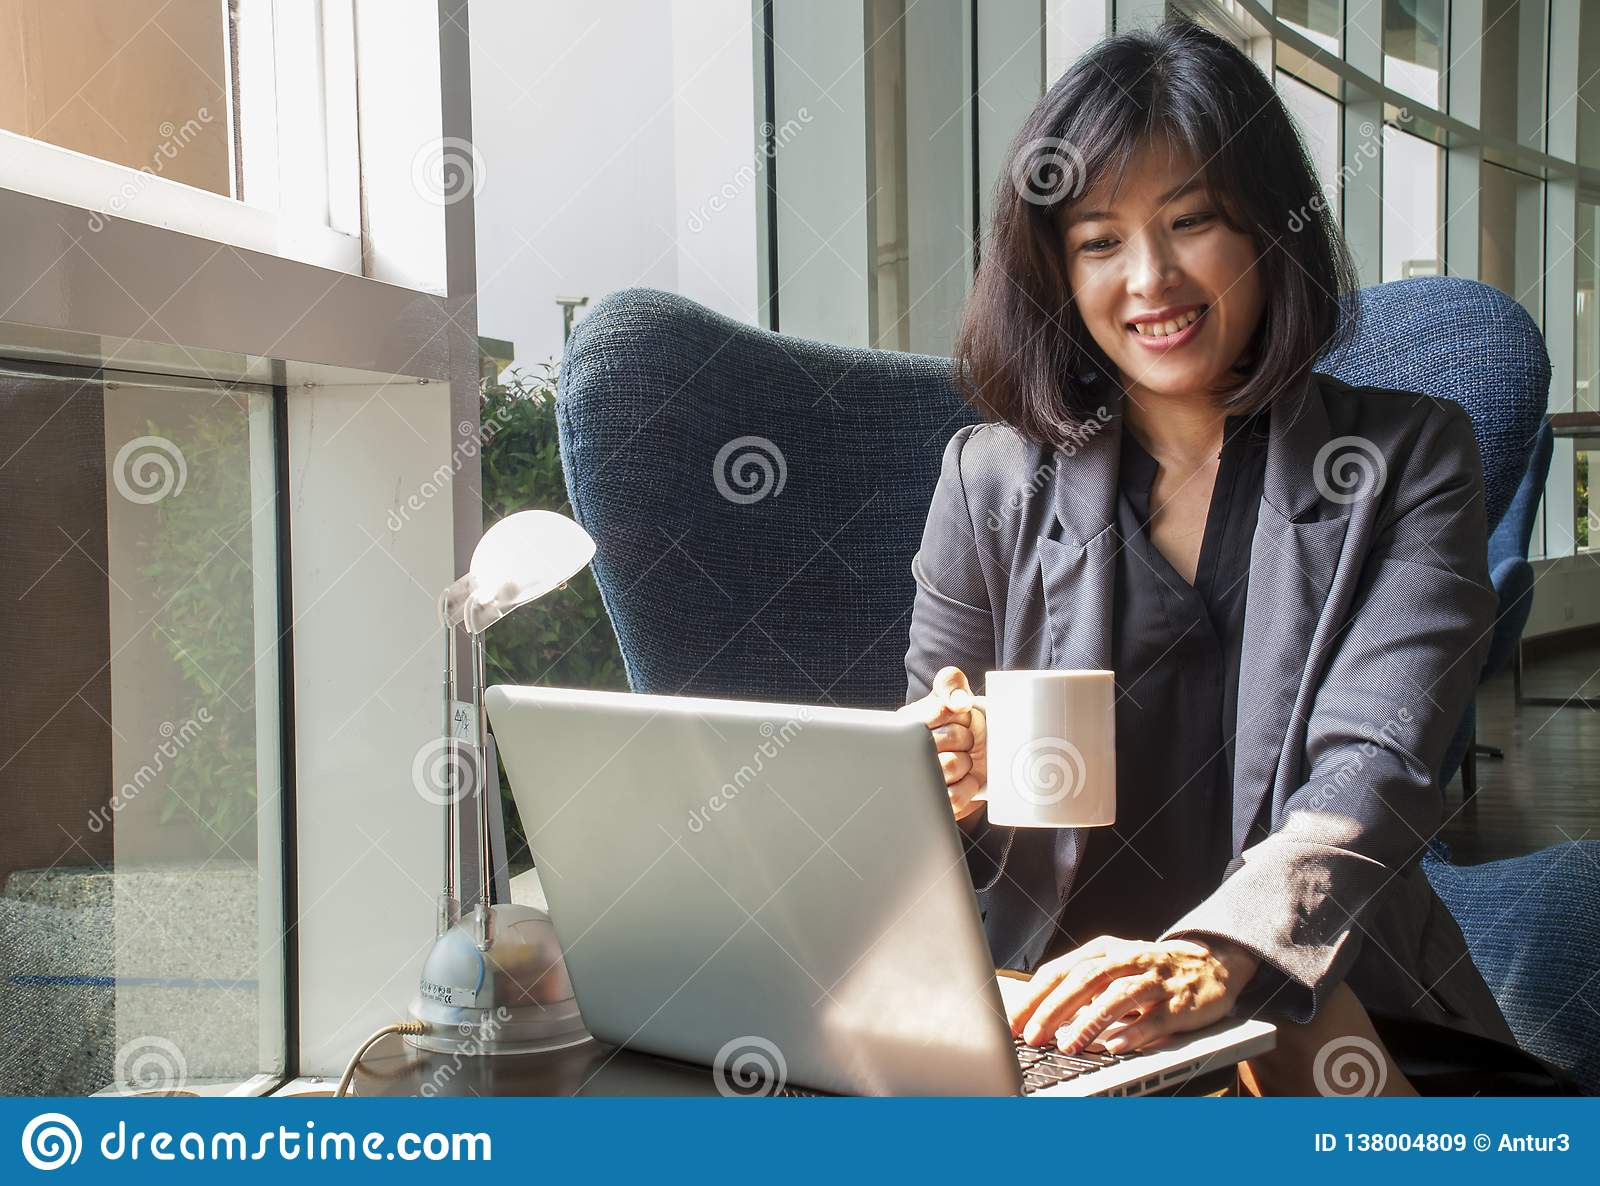 Female businessmen are working on computers and drinking coffee in the office